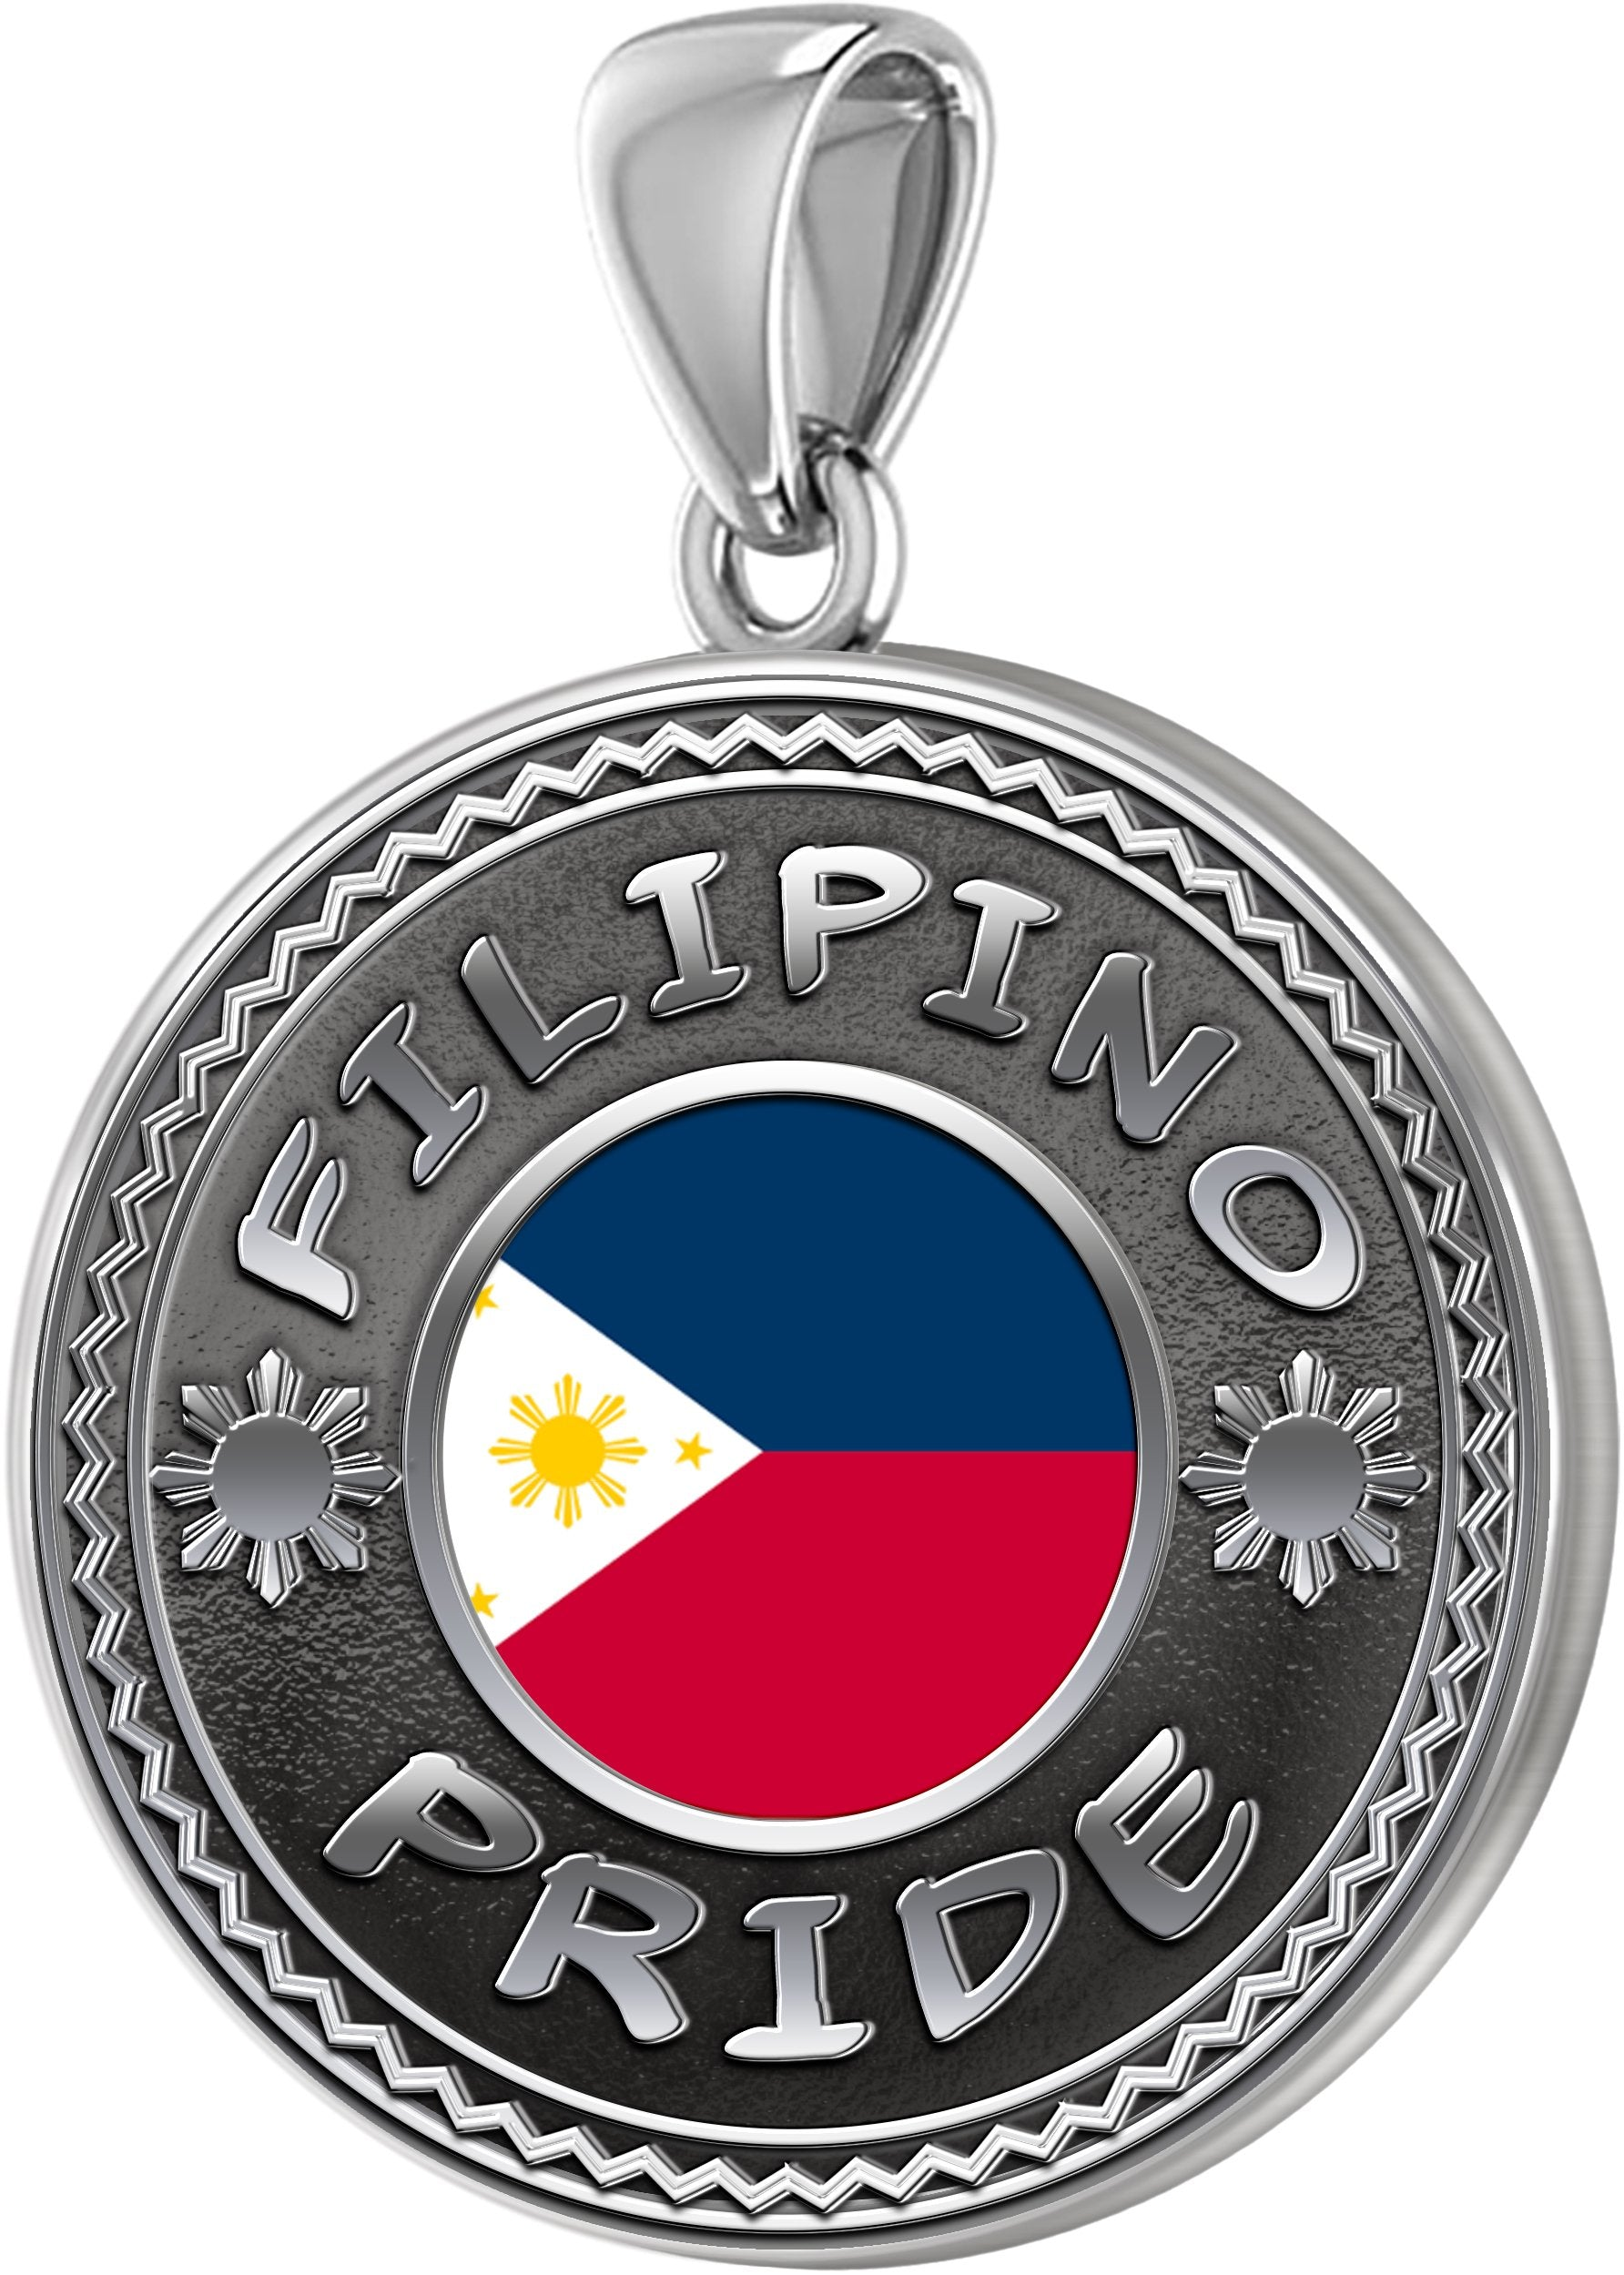 Filipino Necklace In Silver With Flag - No Chain